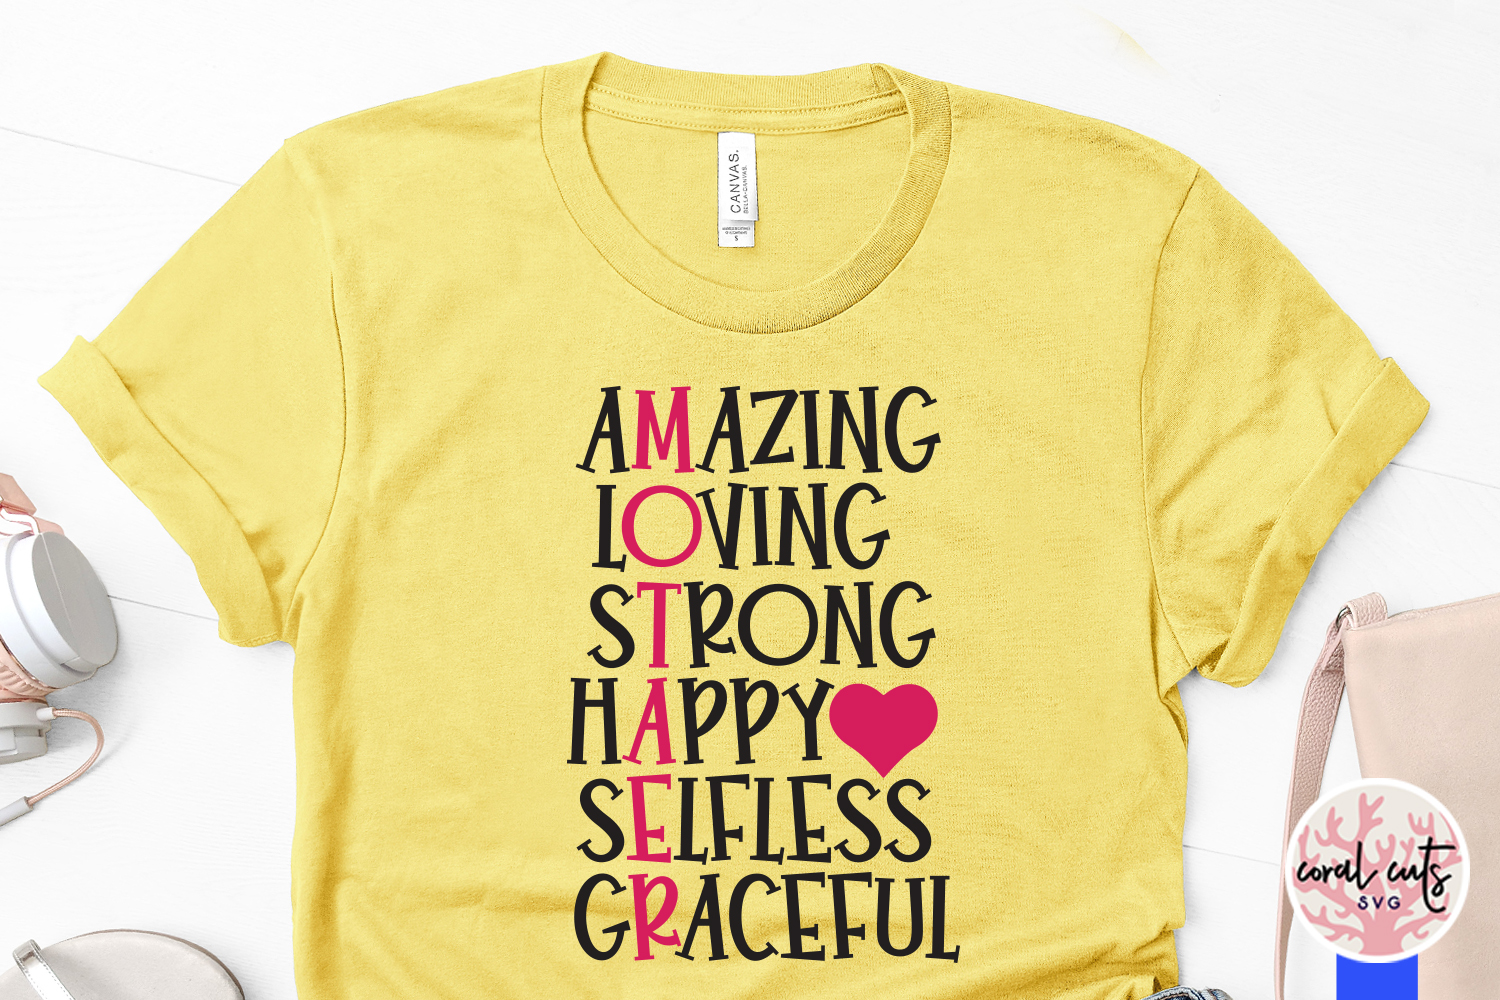 Amazing loving strong happy selfless graceful - Mother SVG example image 3